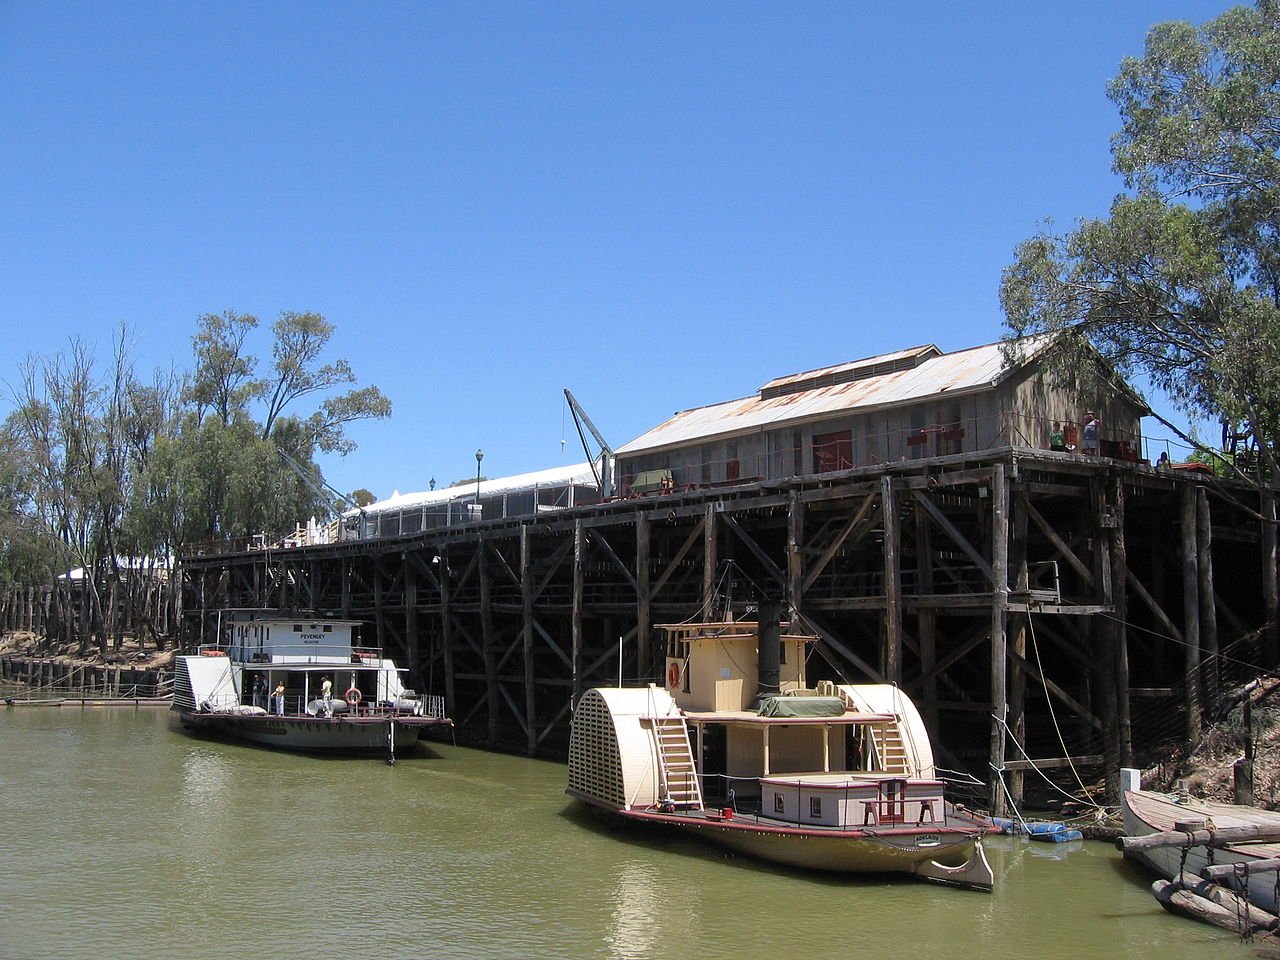 Echuca's main landmark